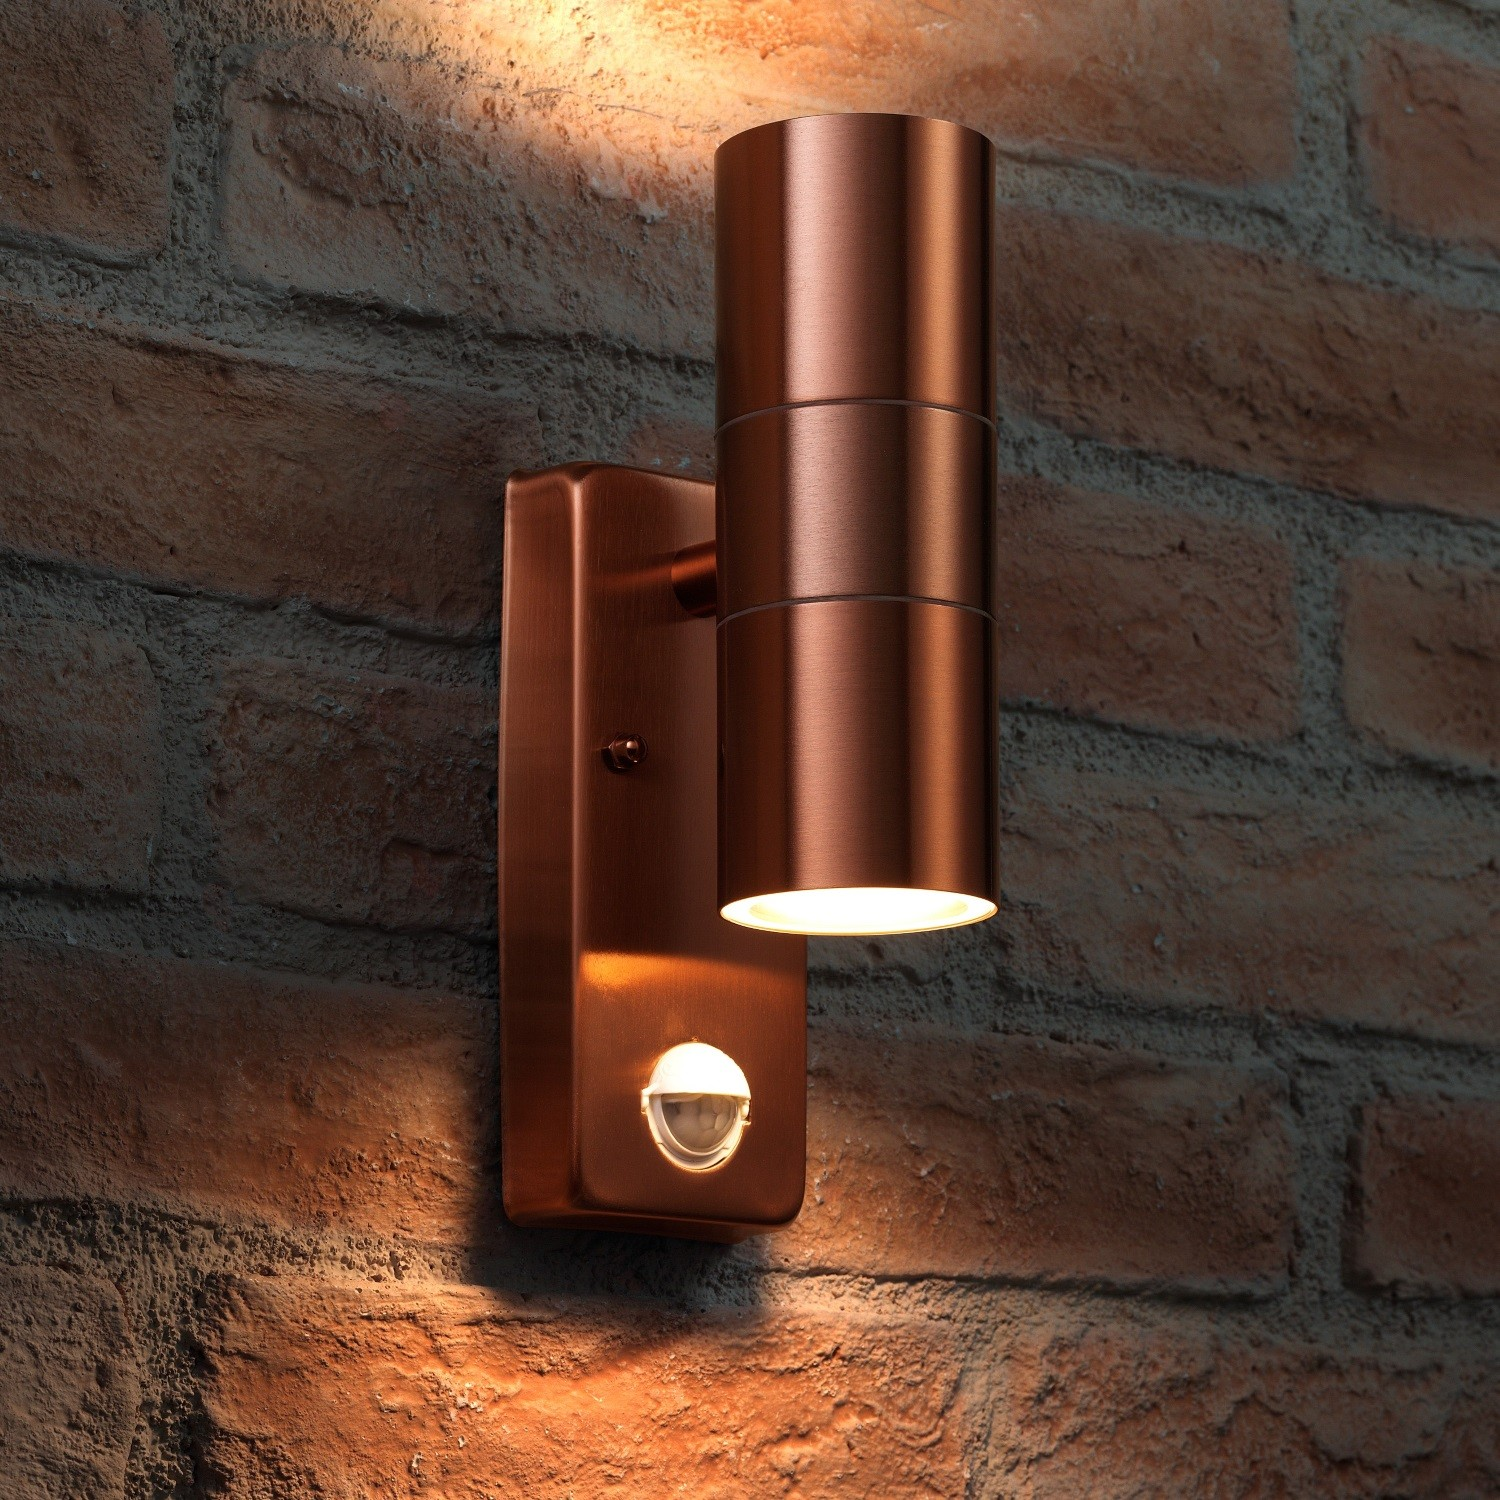 Auraglow Pir Motion Sensor Up Down Outdoor Wall Security Light Warminster Copper Safield